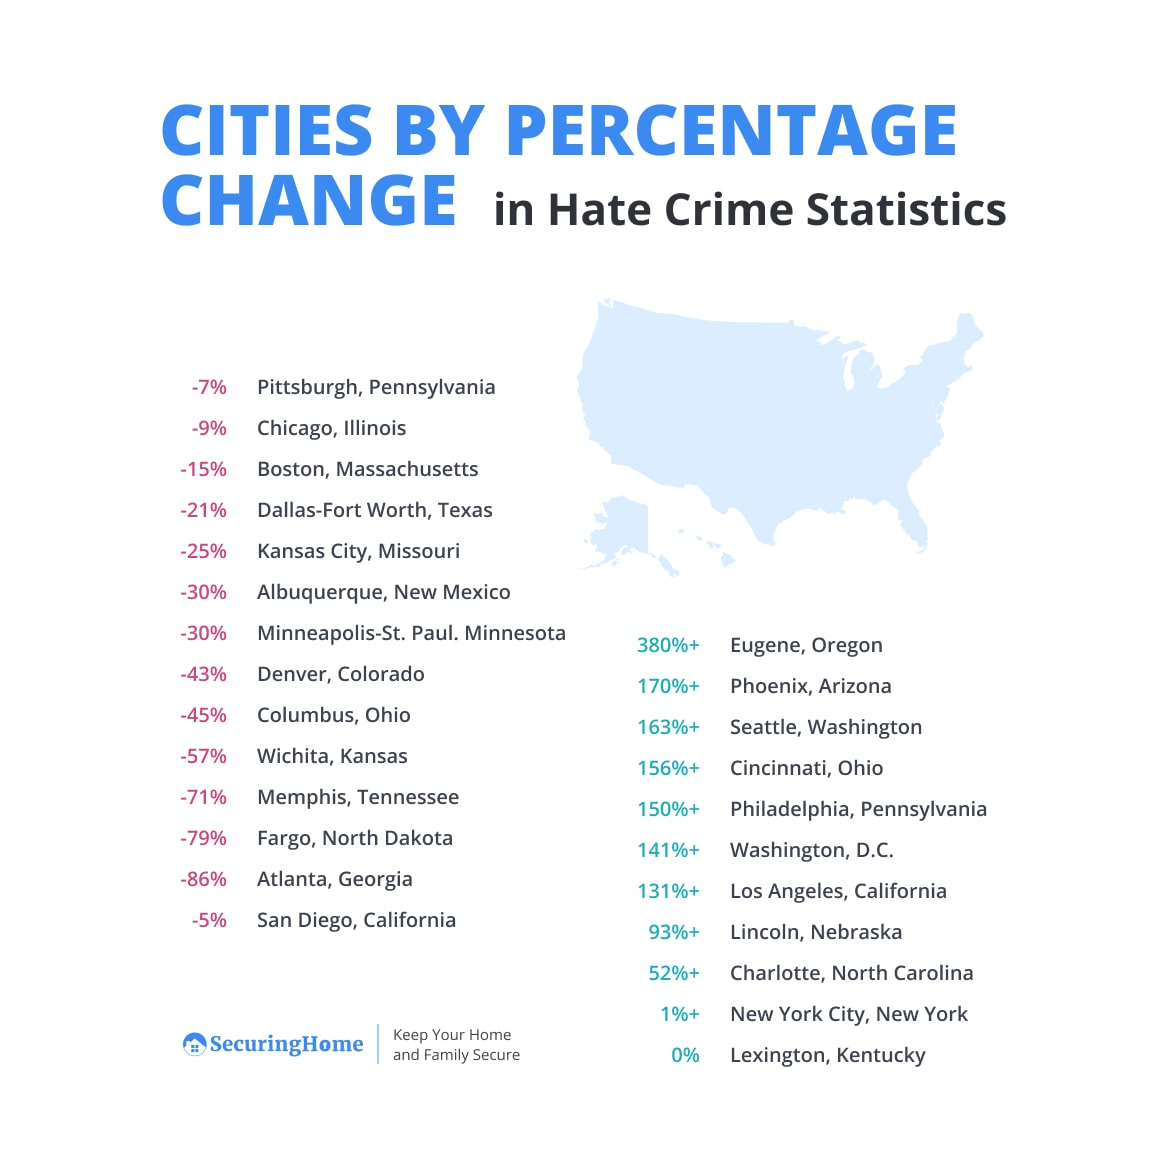 Cities by Percentage Change in Hate Crime Statistics